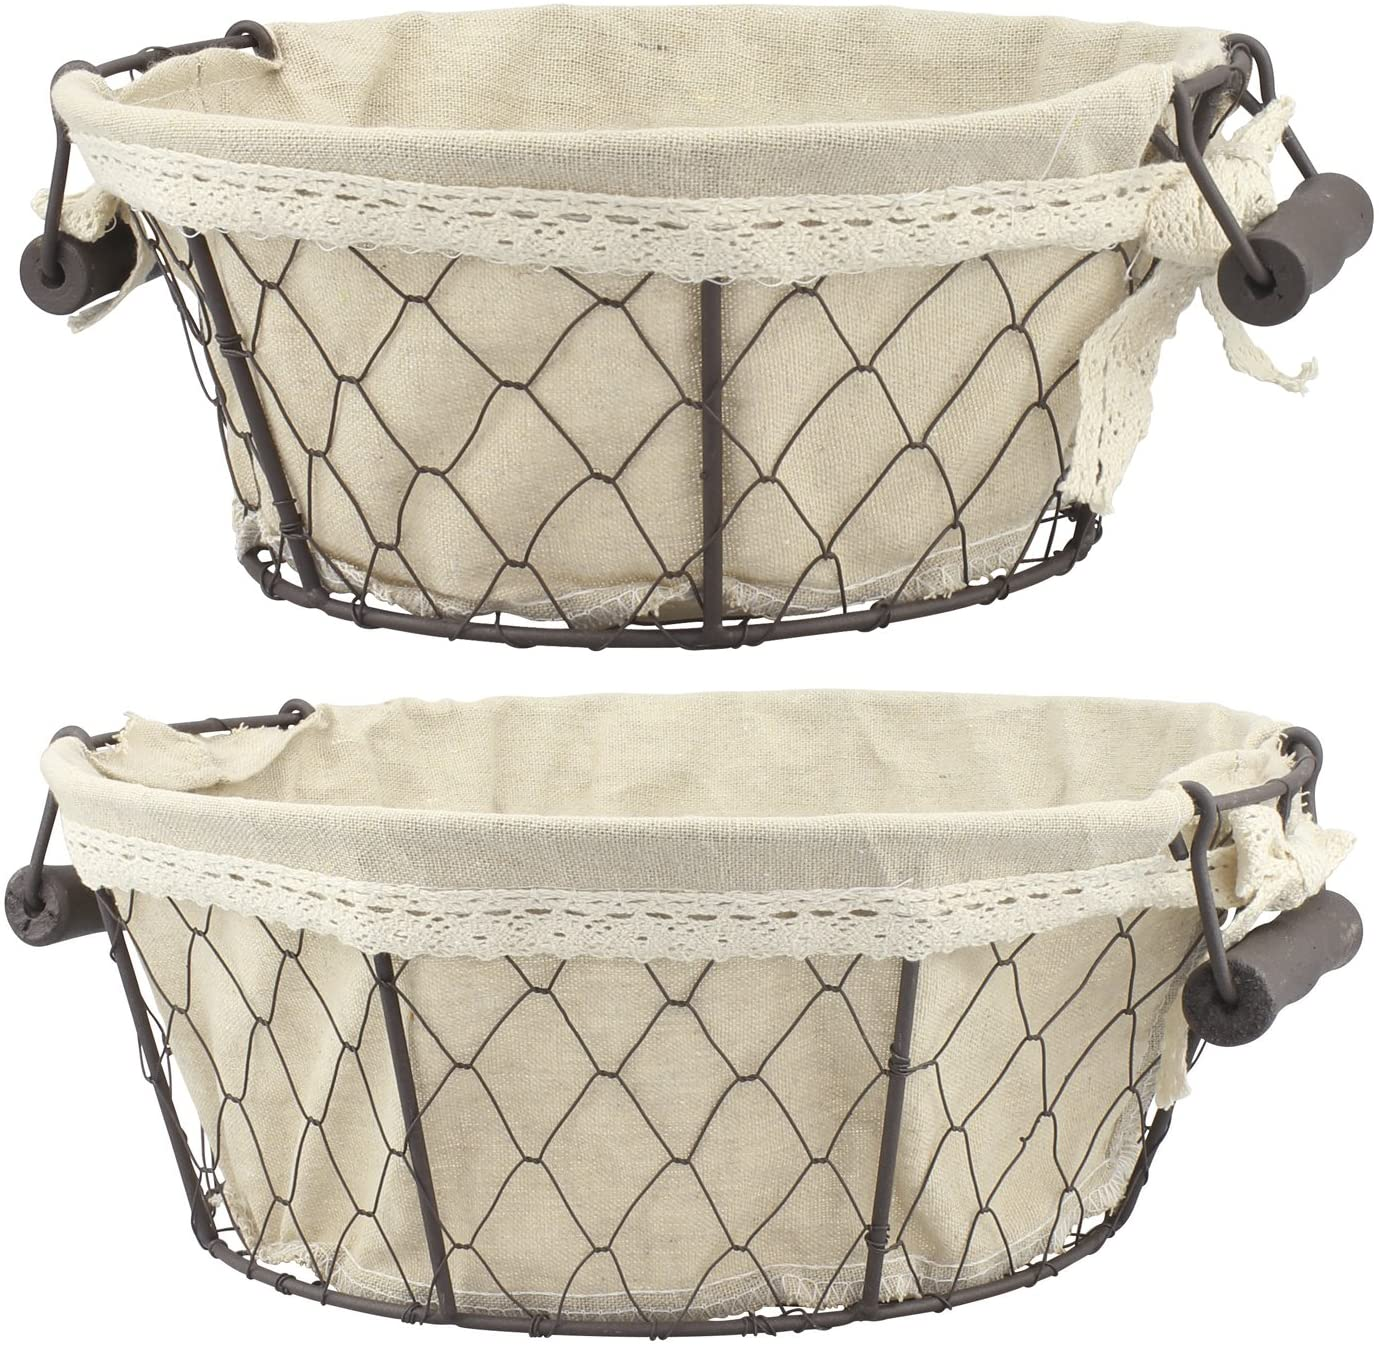 Stonebriar 2pc Round Metal Serving Basket Set with Decorative Fabric Lining, Rustic Serving Trays for Parties, Centerpiece for Coffee or Dining Table, Document Organizer for Office or Kitchen